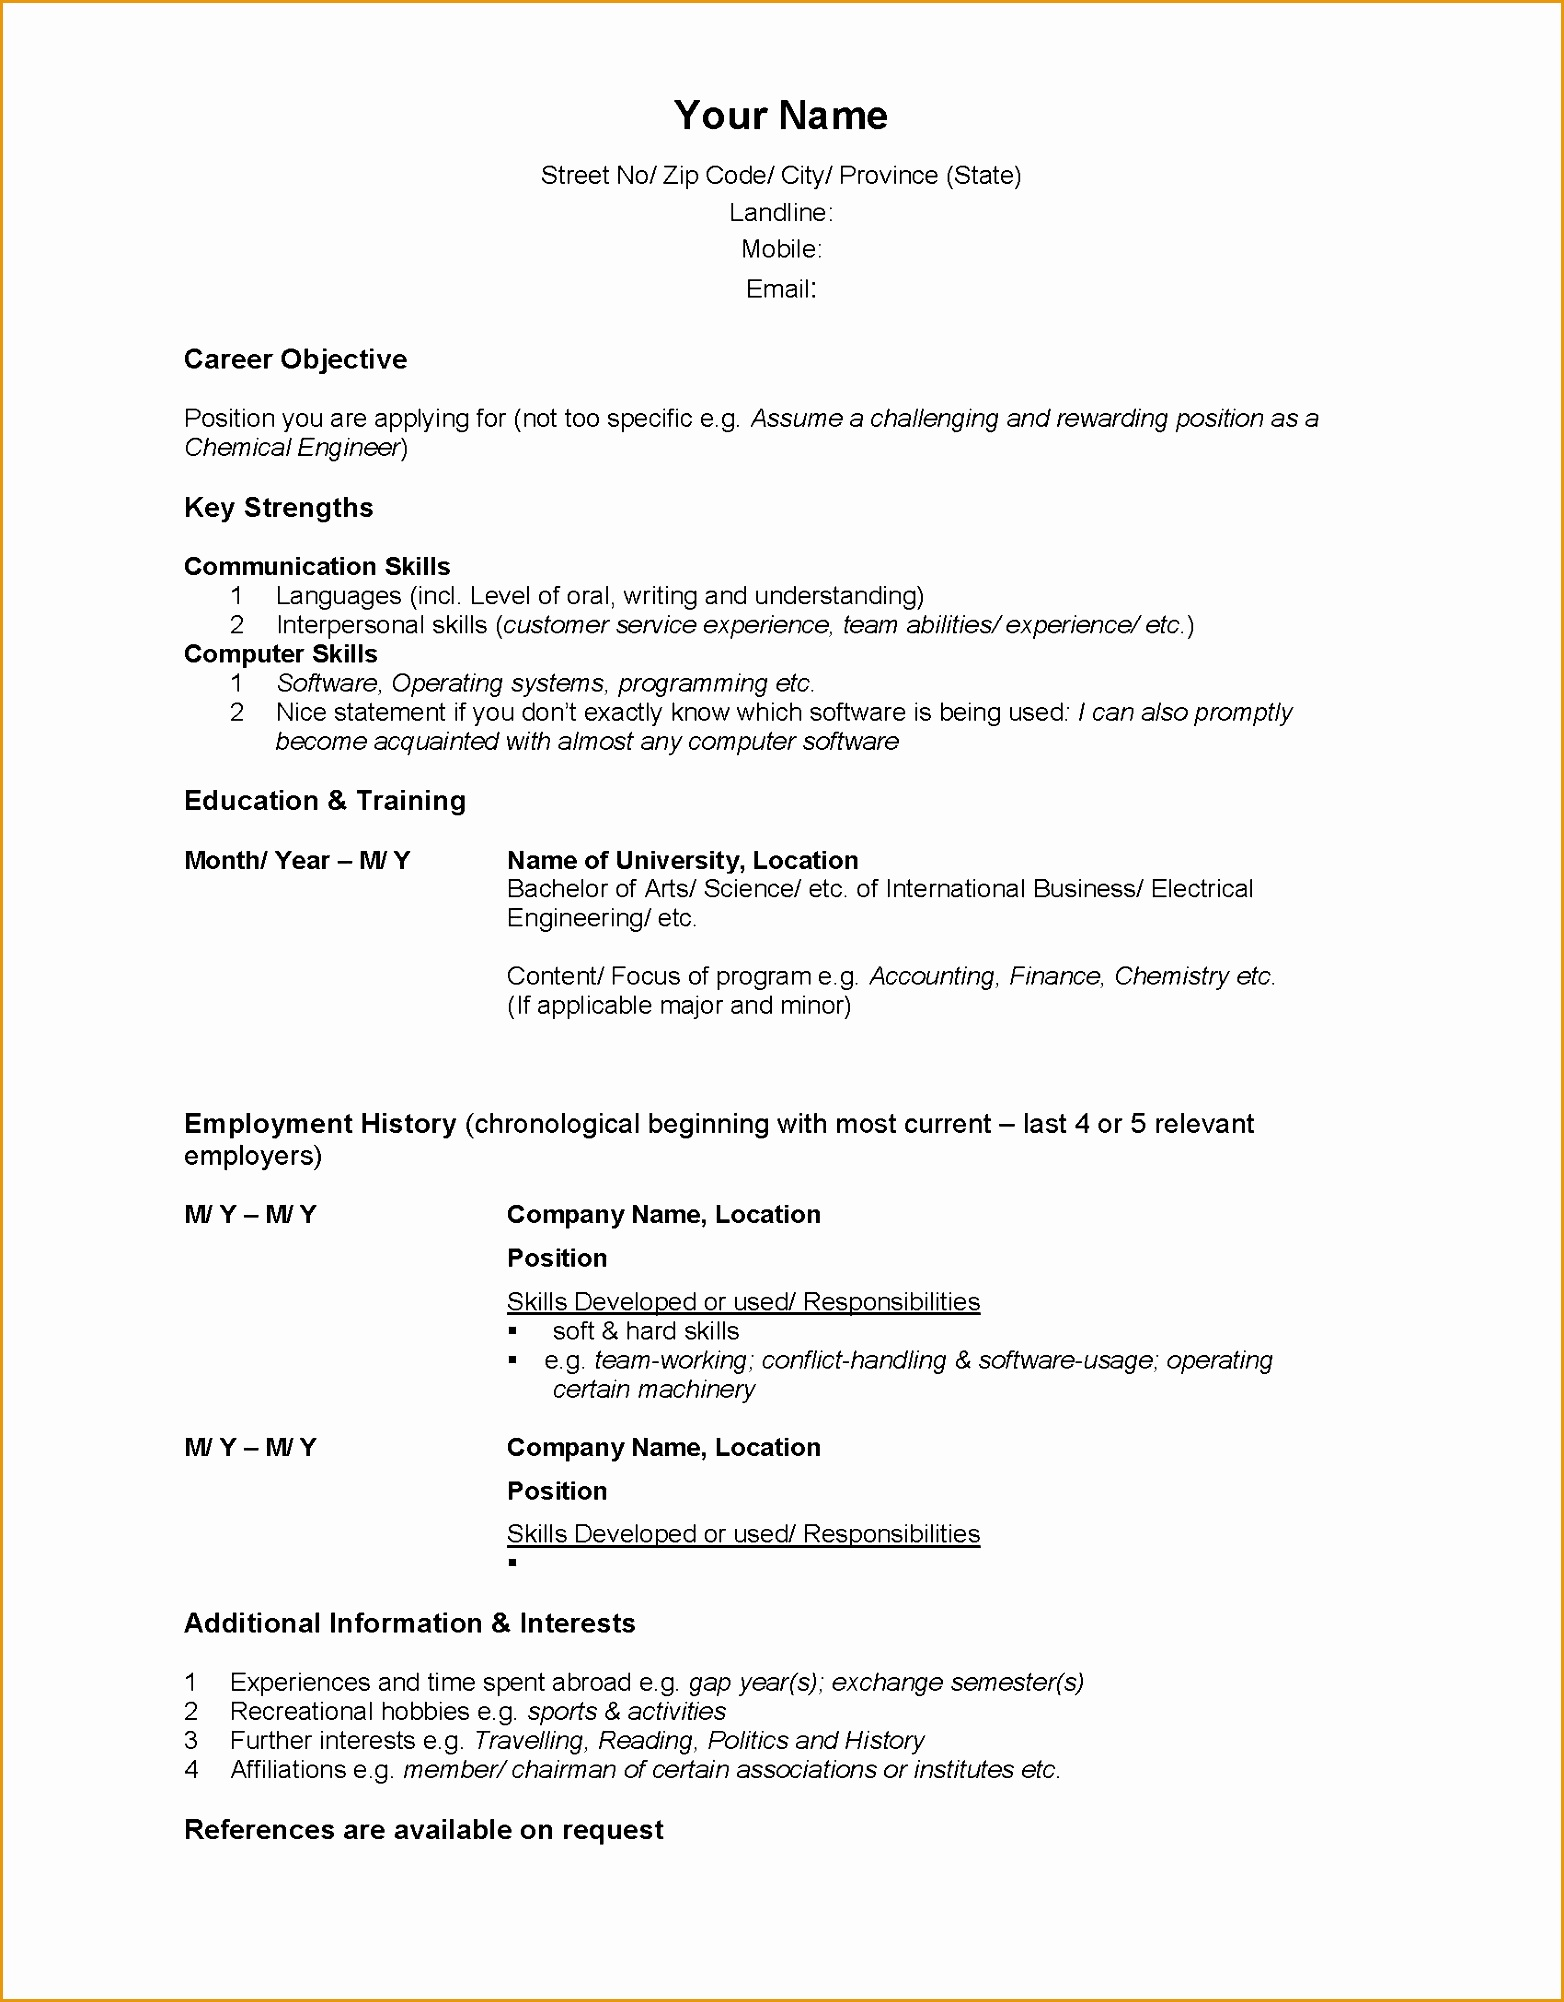 Cv Template Word Canada Sample Cv Latest Format Sample Customer Service Resume Custom Paper Writing Service20021564